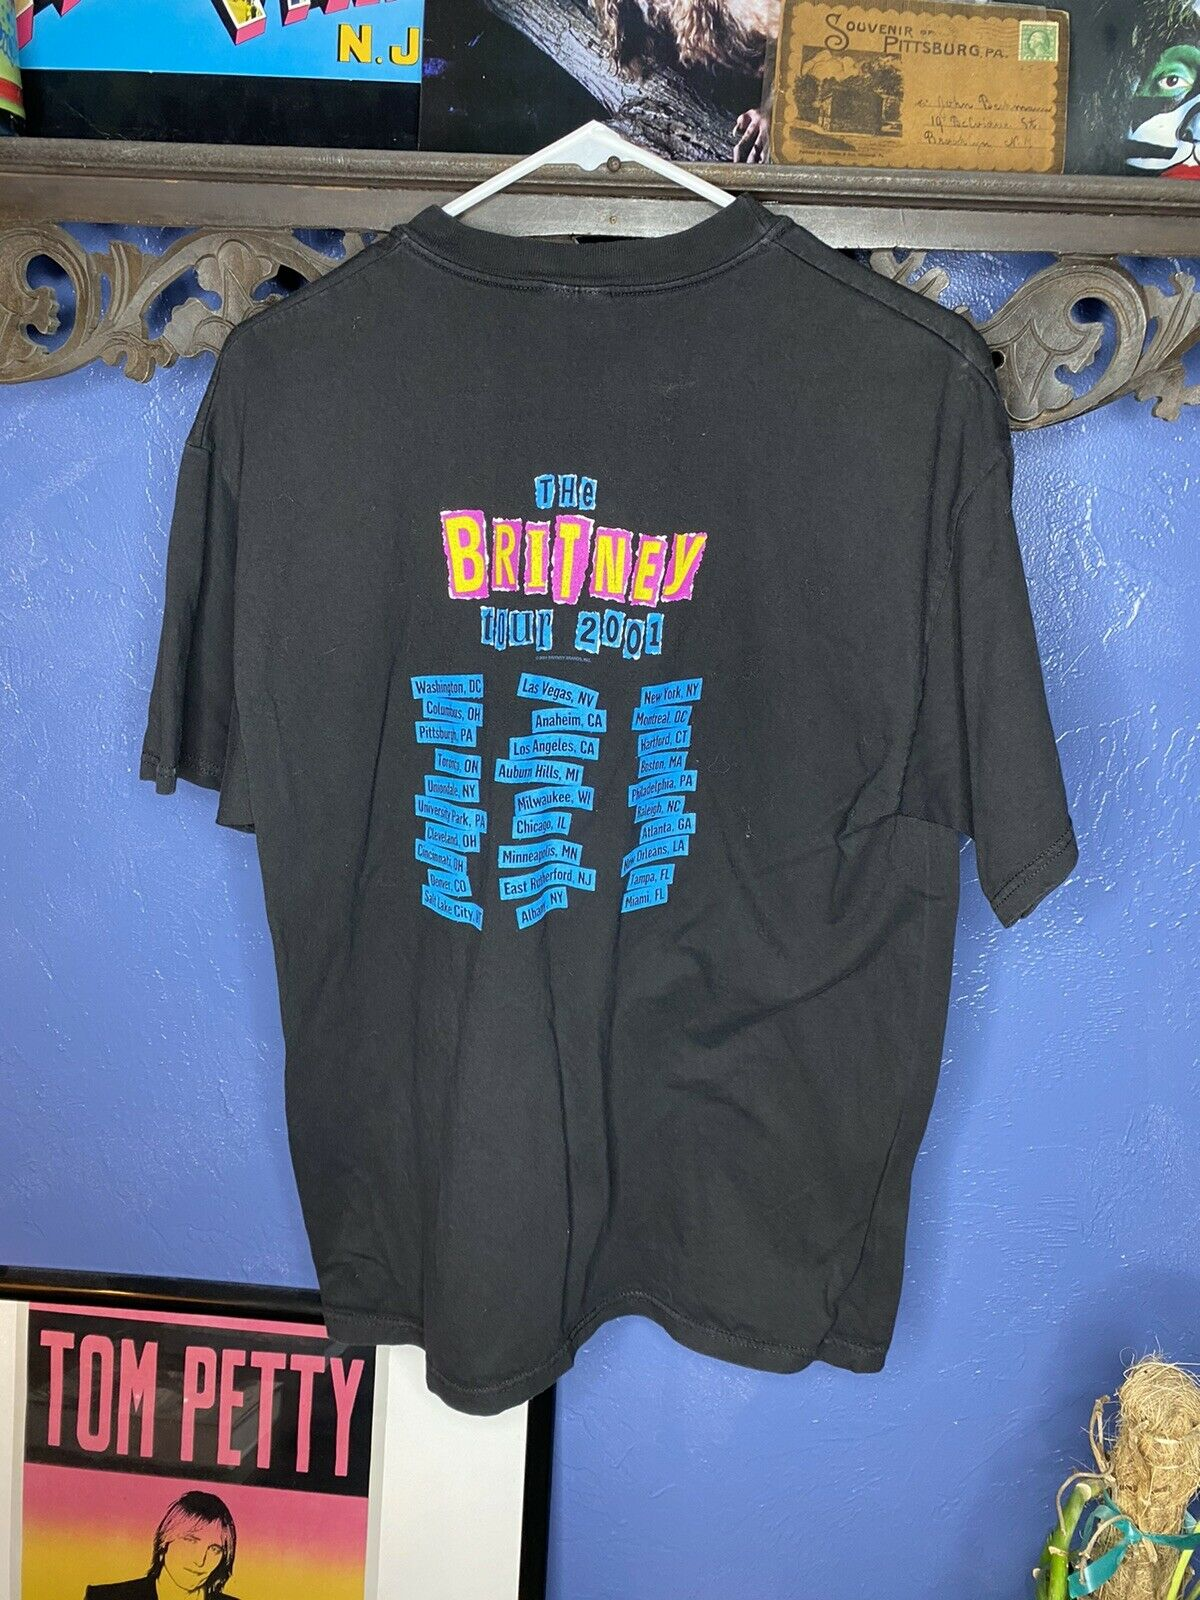 Vintage Britney Spears T Shirt 2001 The Britney T… - image 3